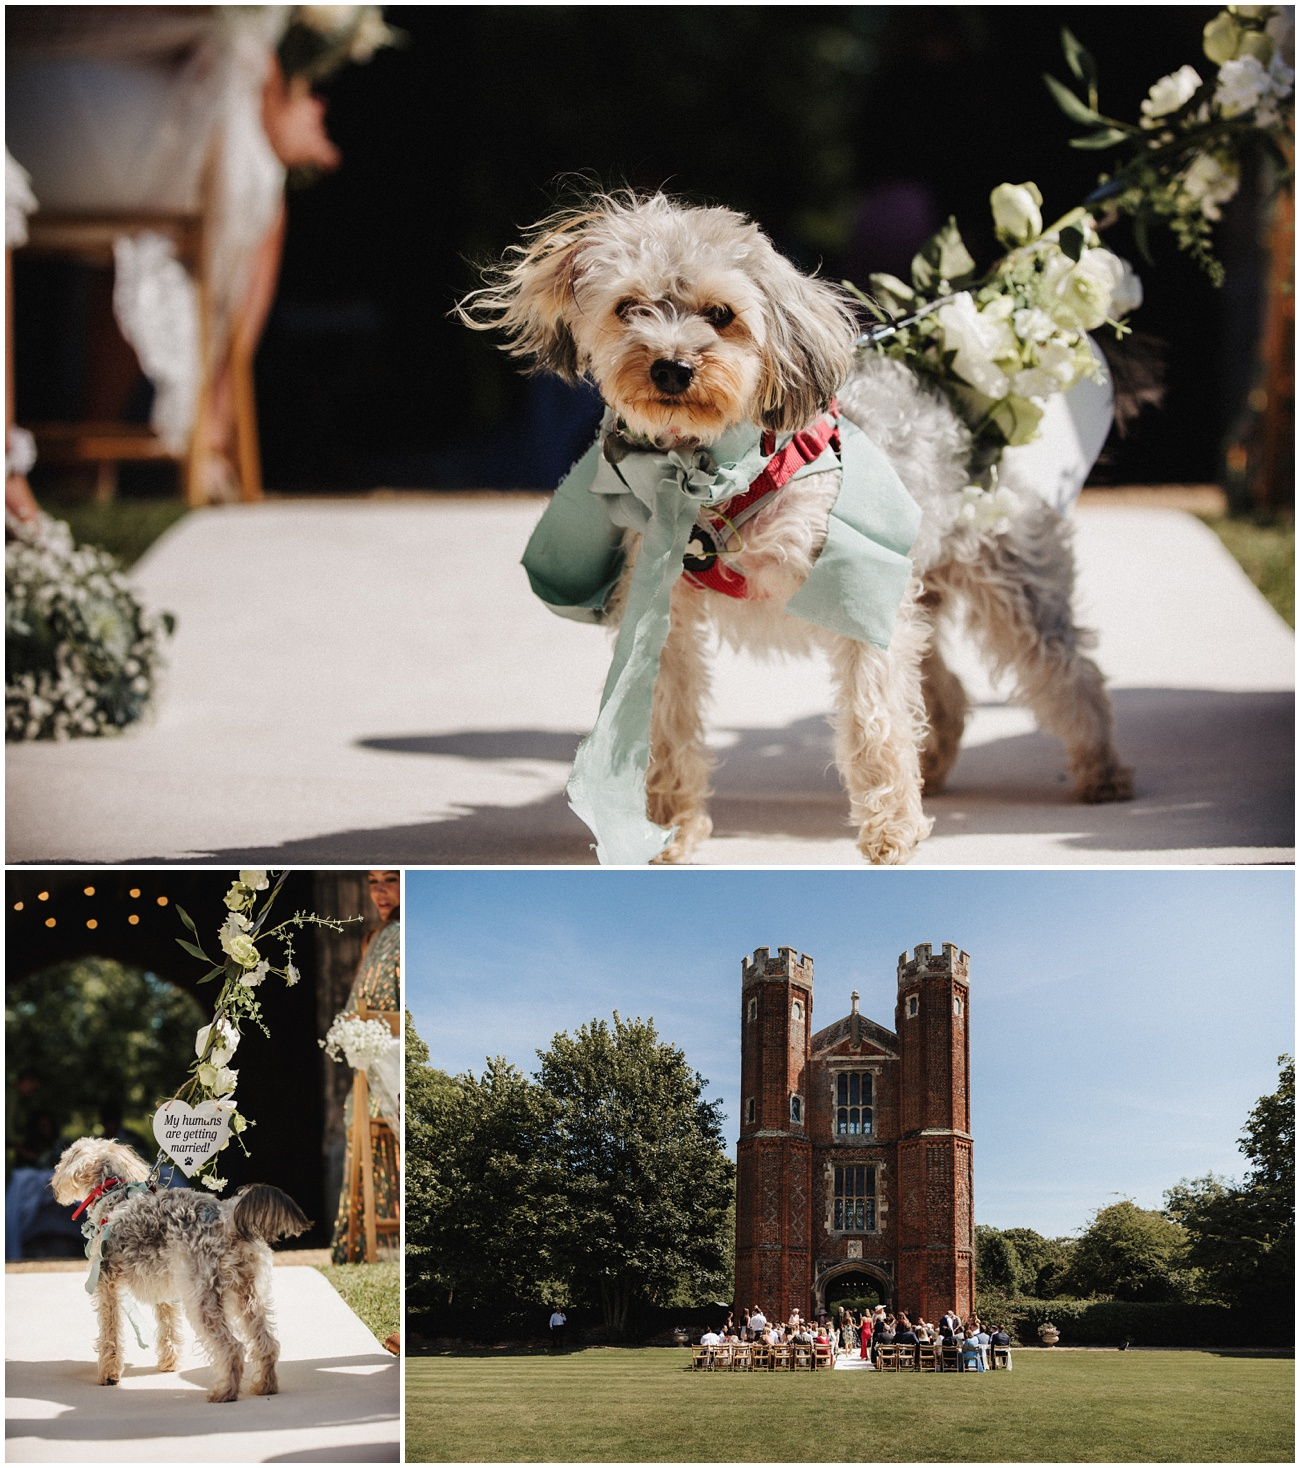 The brides dog features during the wedding ceremony